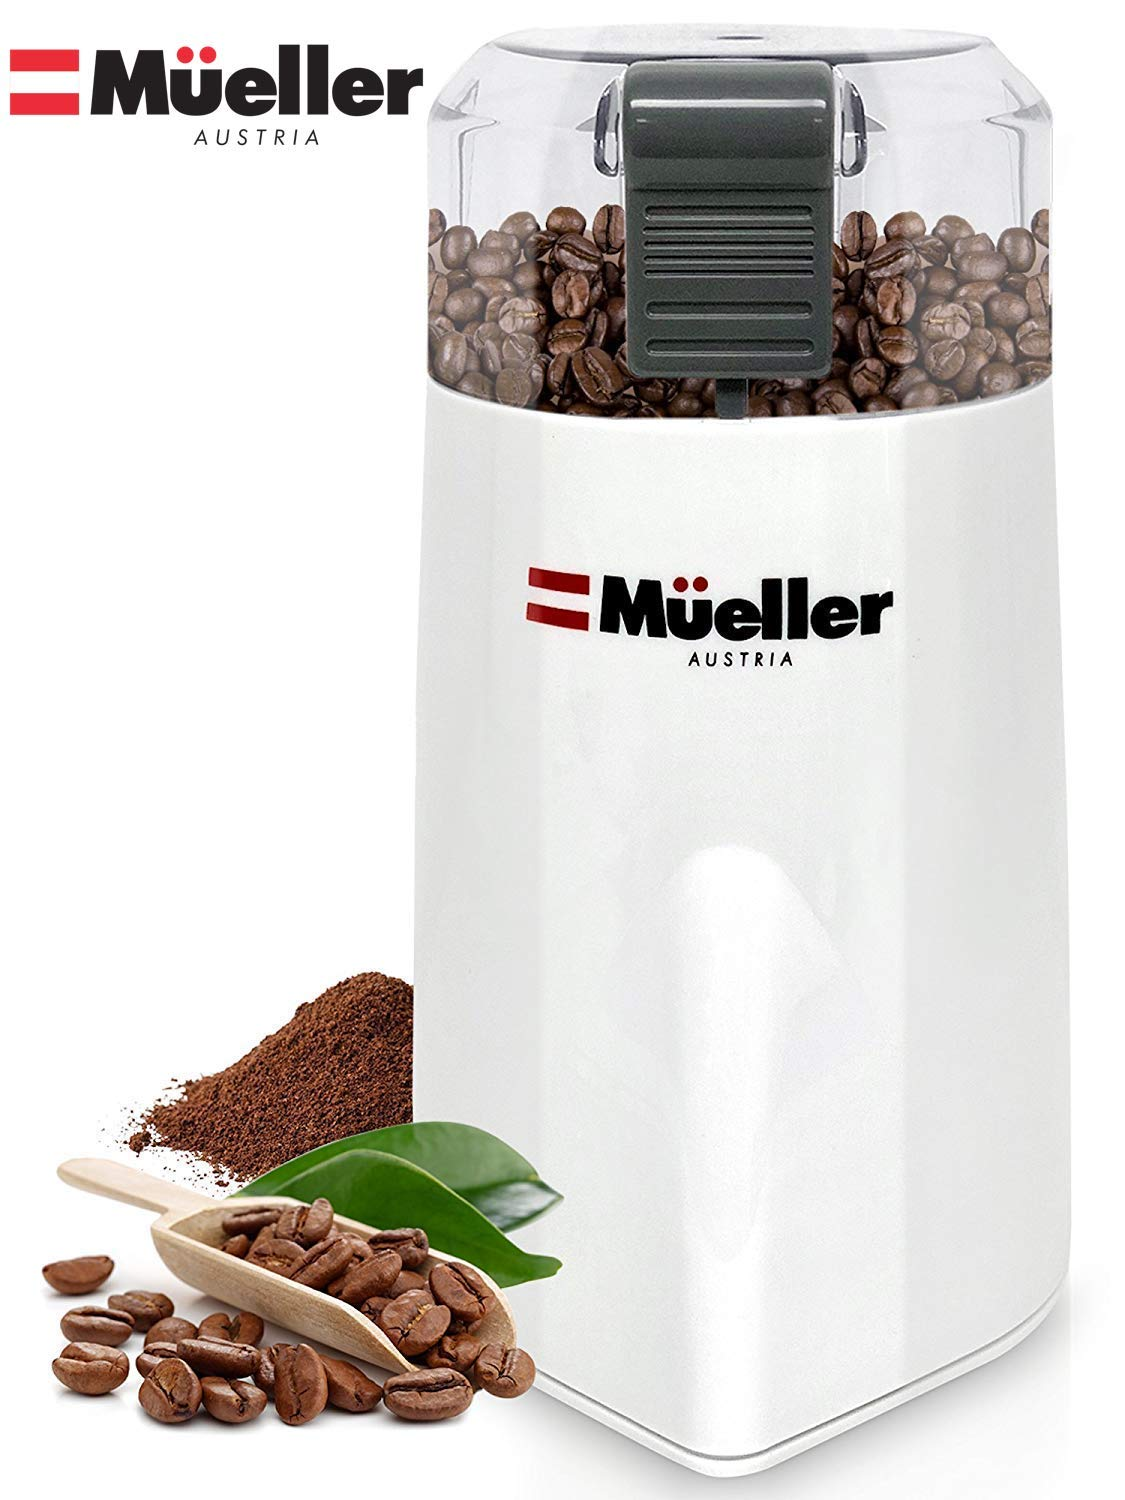 Mueller Austria HyperGrind Precision Electric Coffee Grinder Mill with Large Grinding Capacity and HD Motor also for Spices, Herbs, Nuts, Grains and More and More, White by Mueller Austria